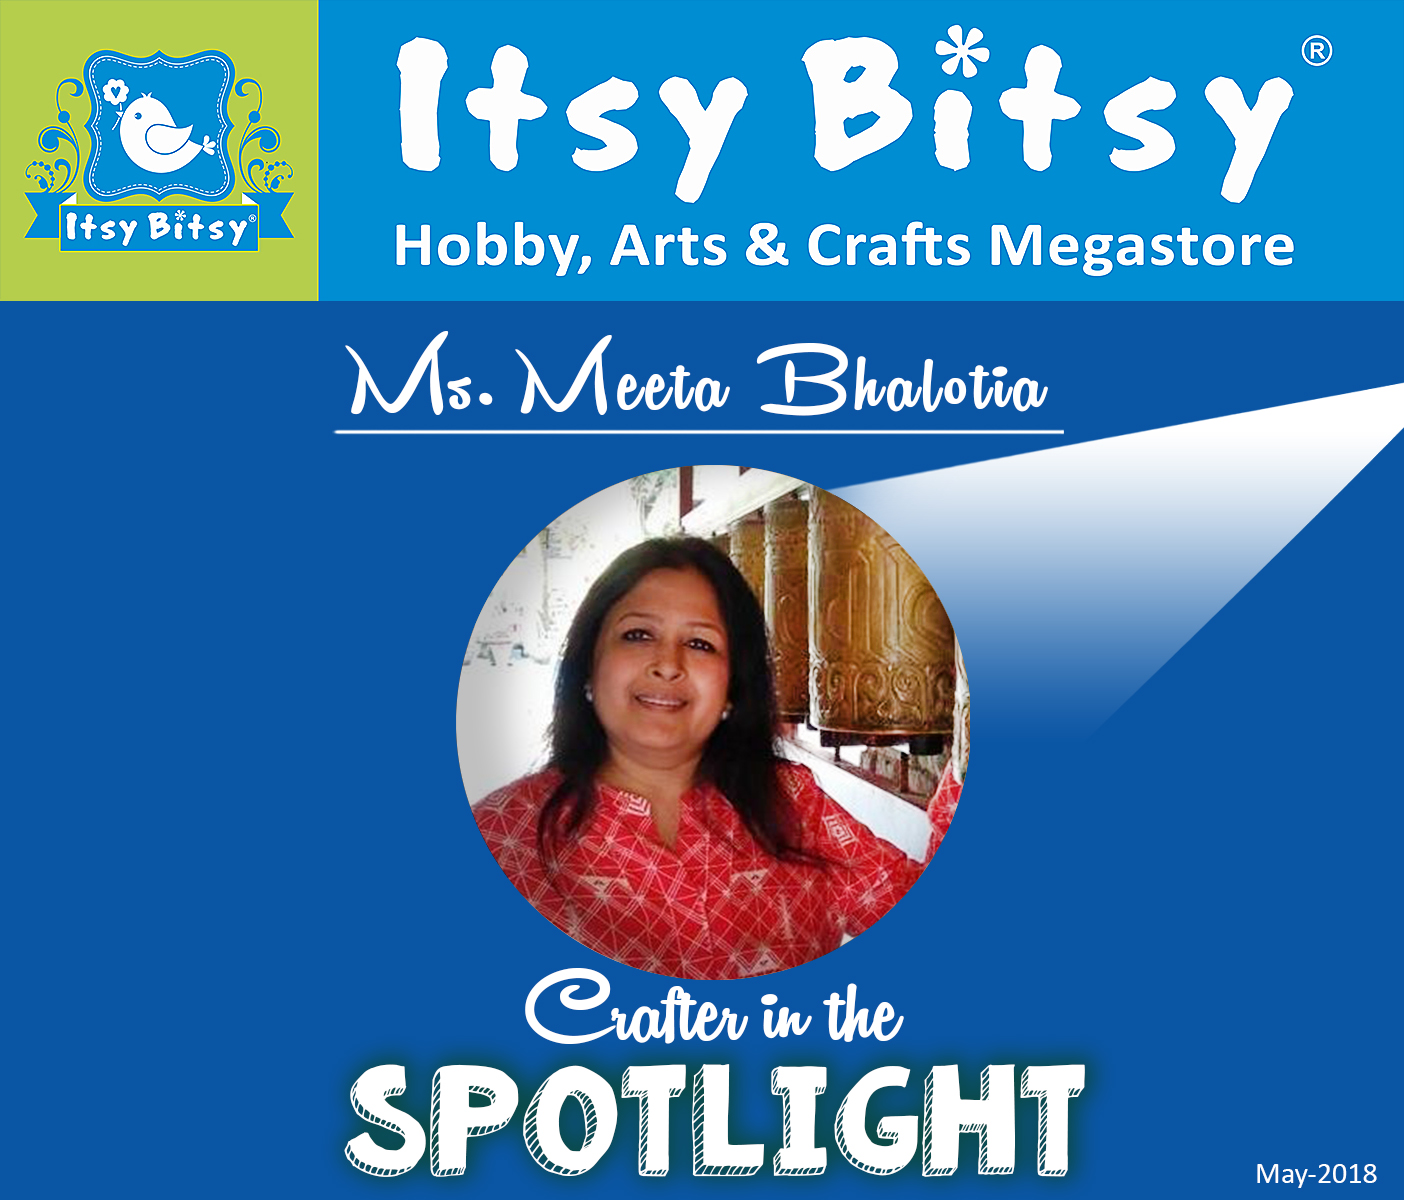 Crafter in  the Spotlight